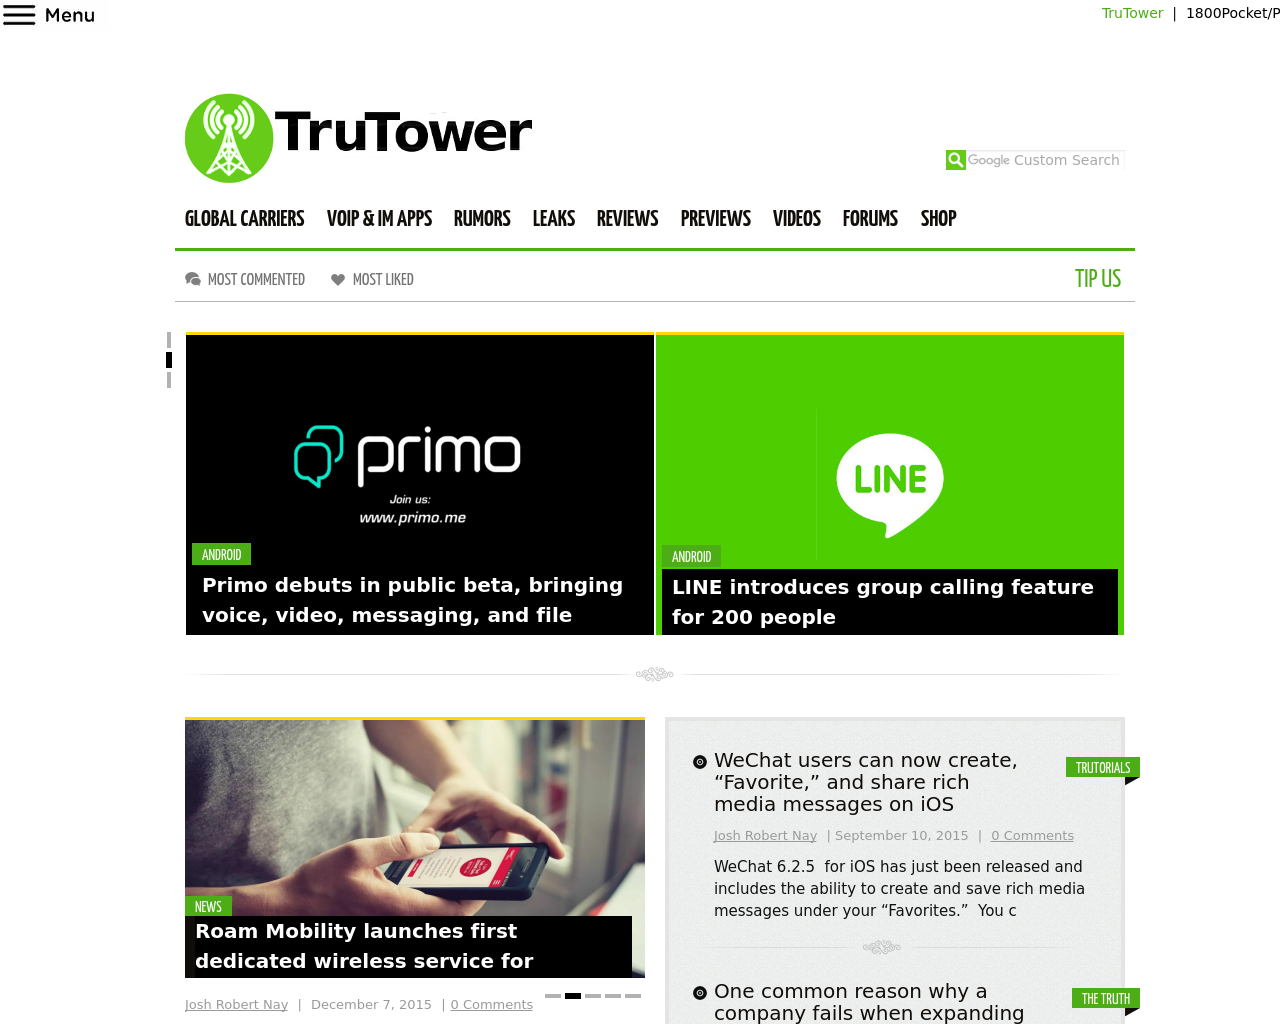 TruTower-Advertising-Reviews-Pricing